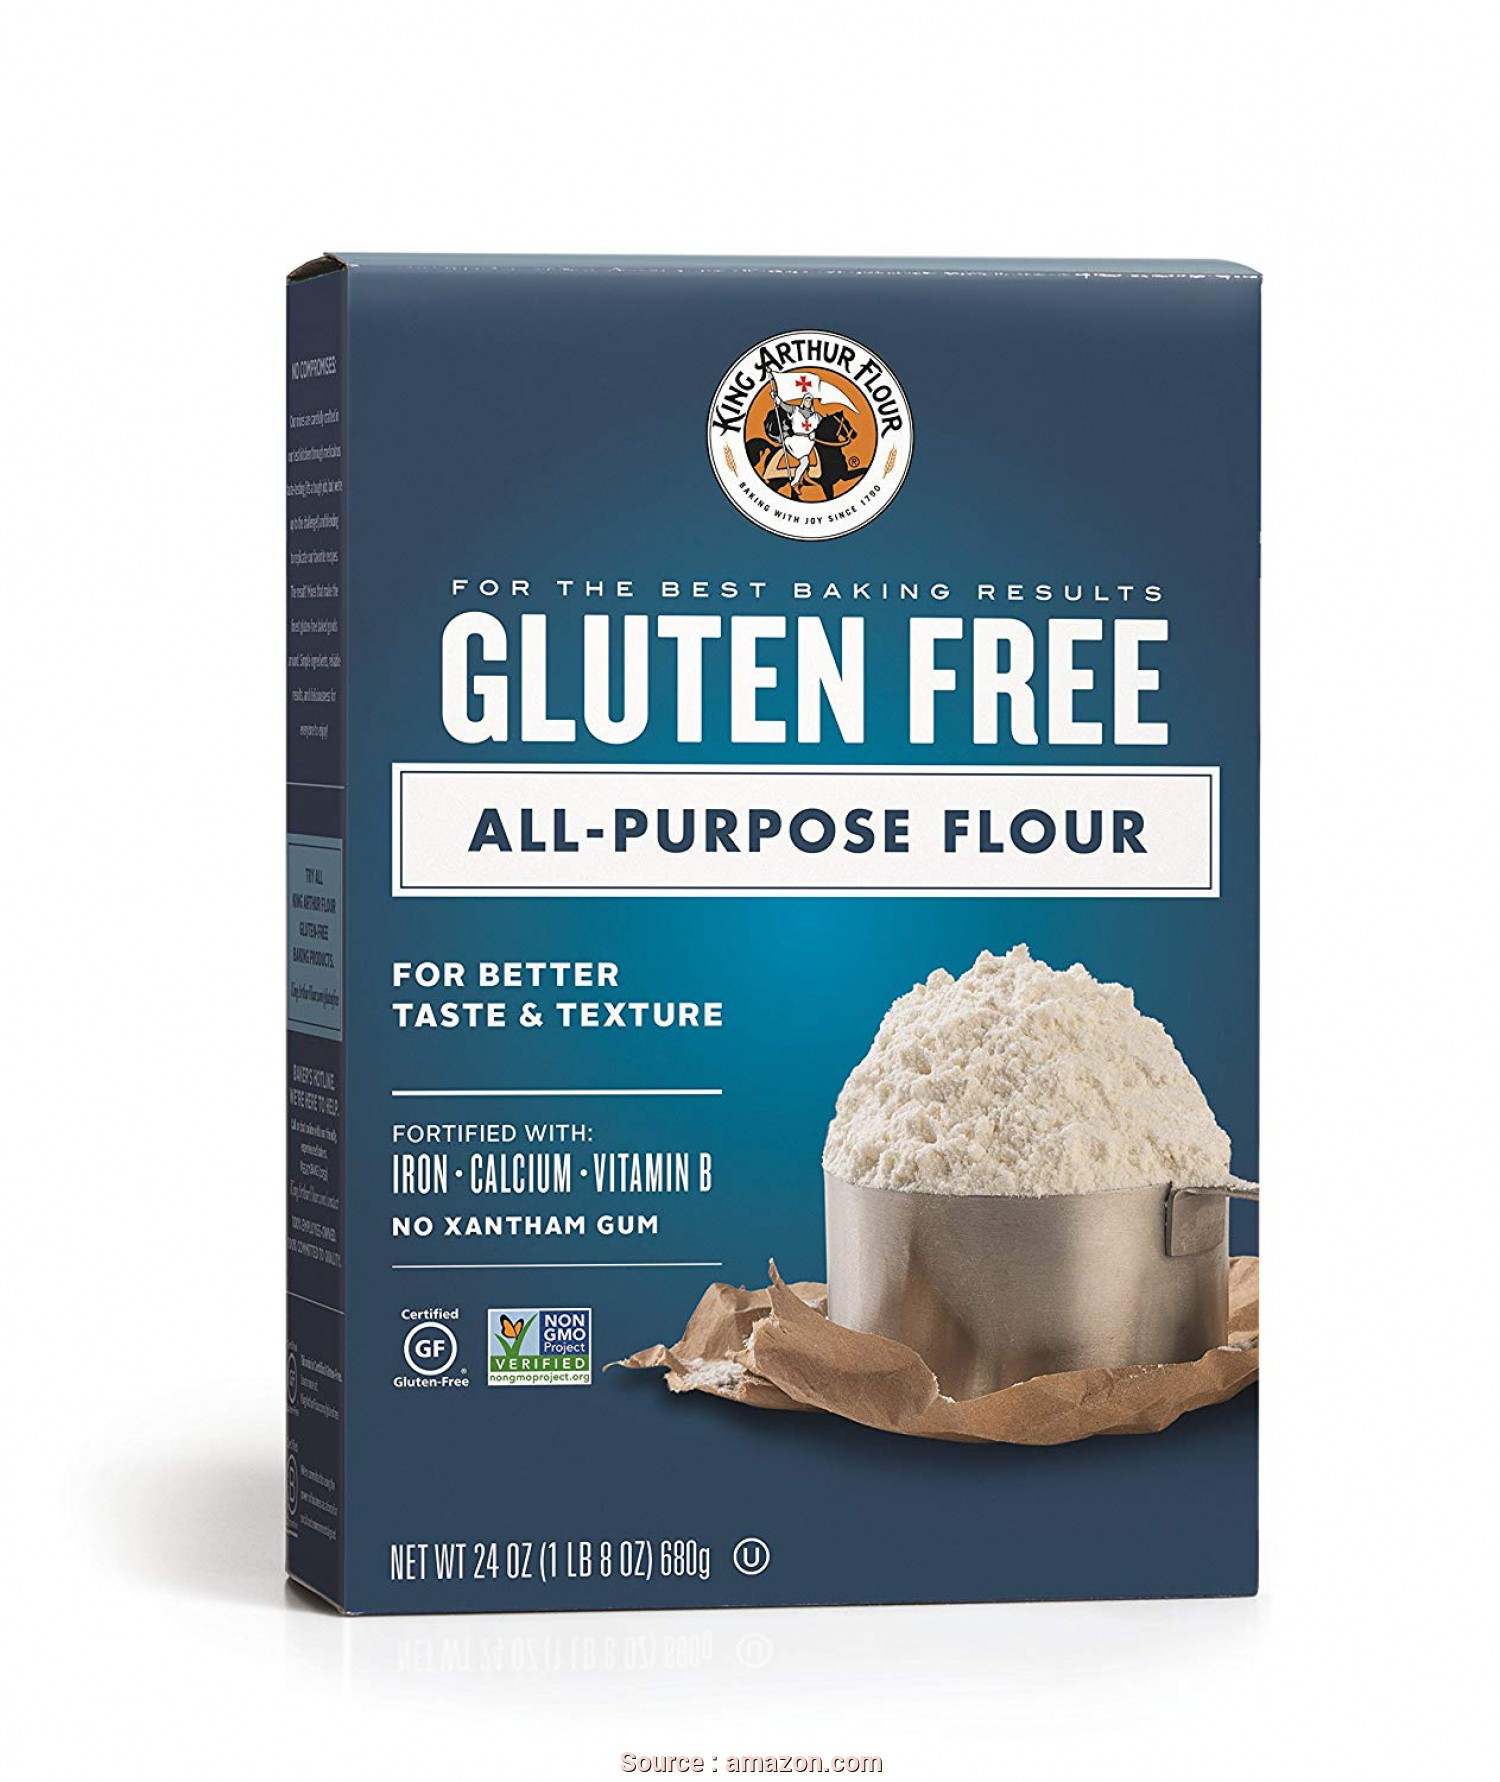 B Divani Flour, Freddo Gluten Free All-Purpose Flour, 24 Ounces